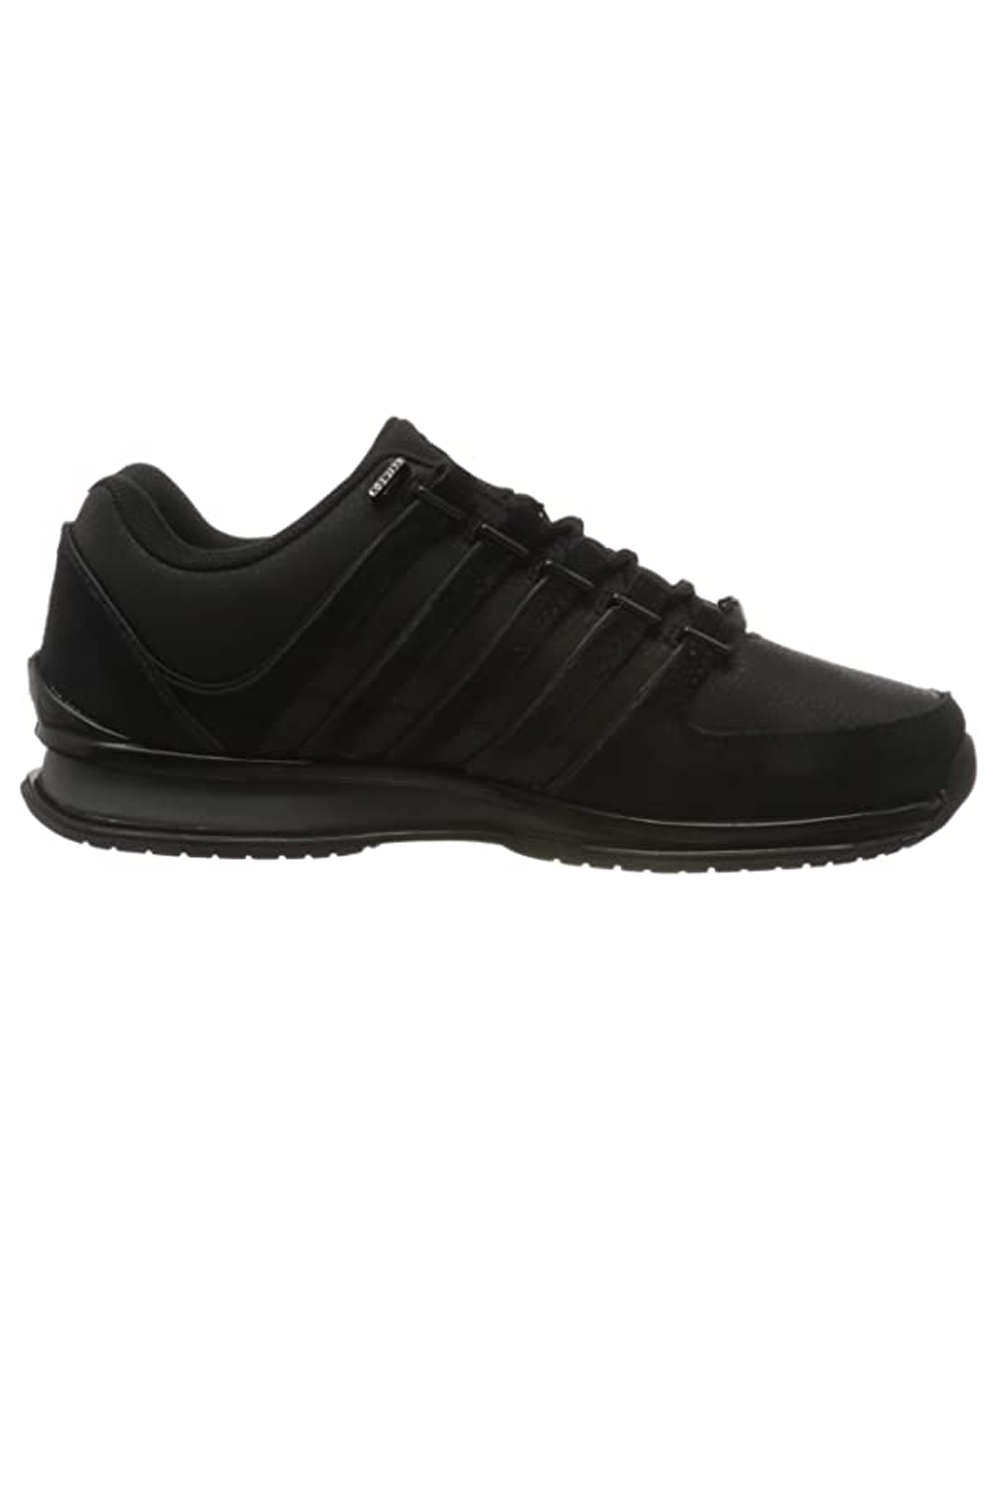 thumbnail 3 - K-Swiss Mens Comfortable Low Top Classic Leather Suede Rinzler Trainers Sneakers